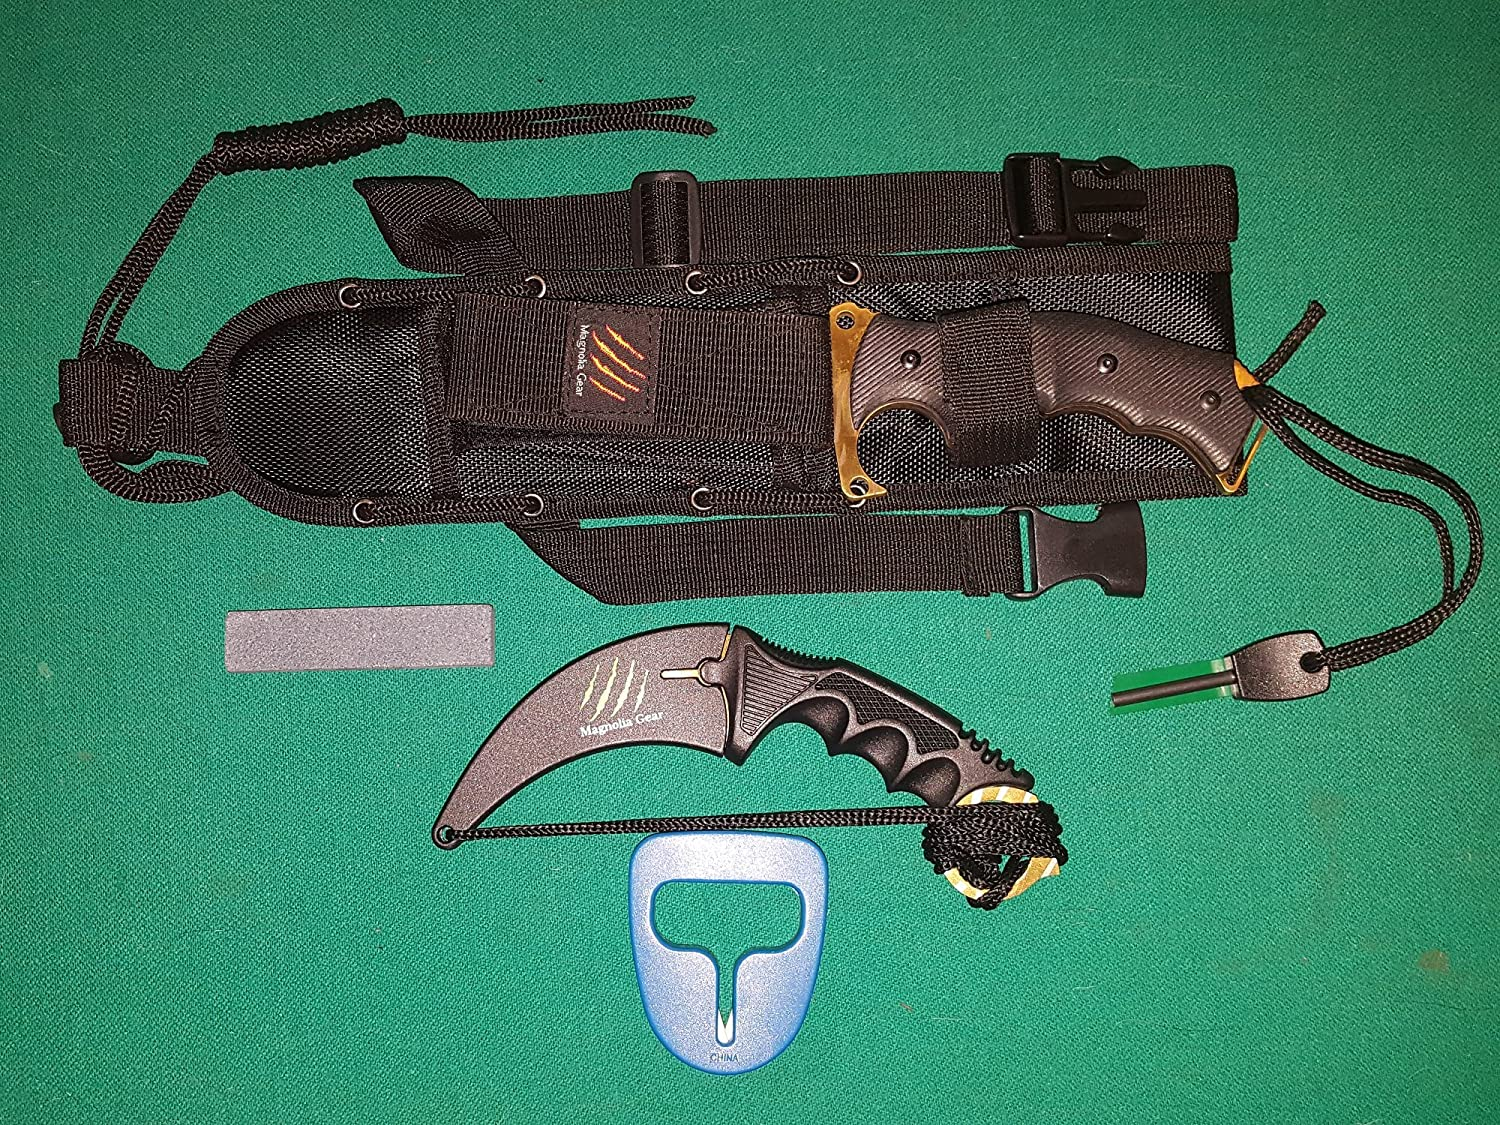 Karambit and Huntsman Knife 2 Piece Set